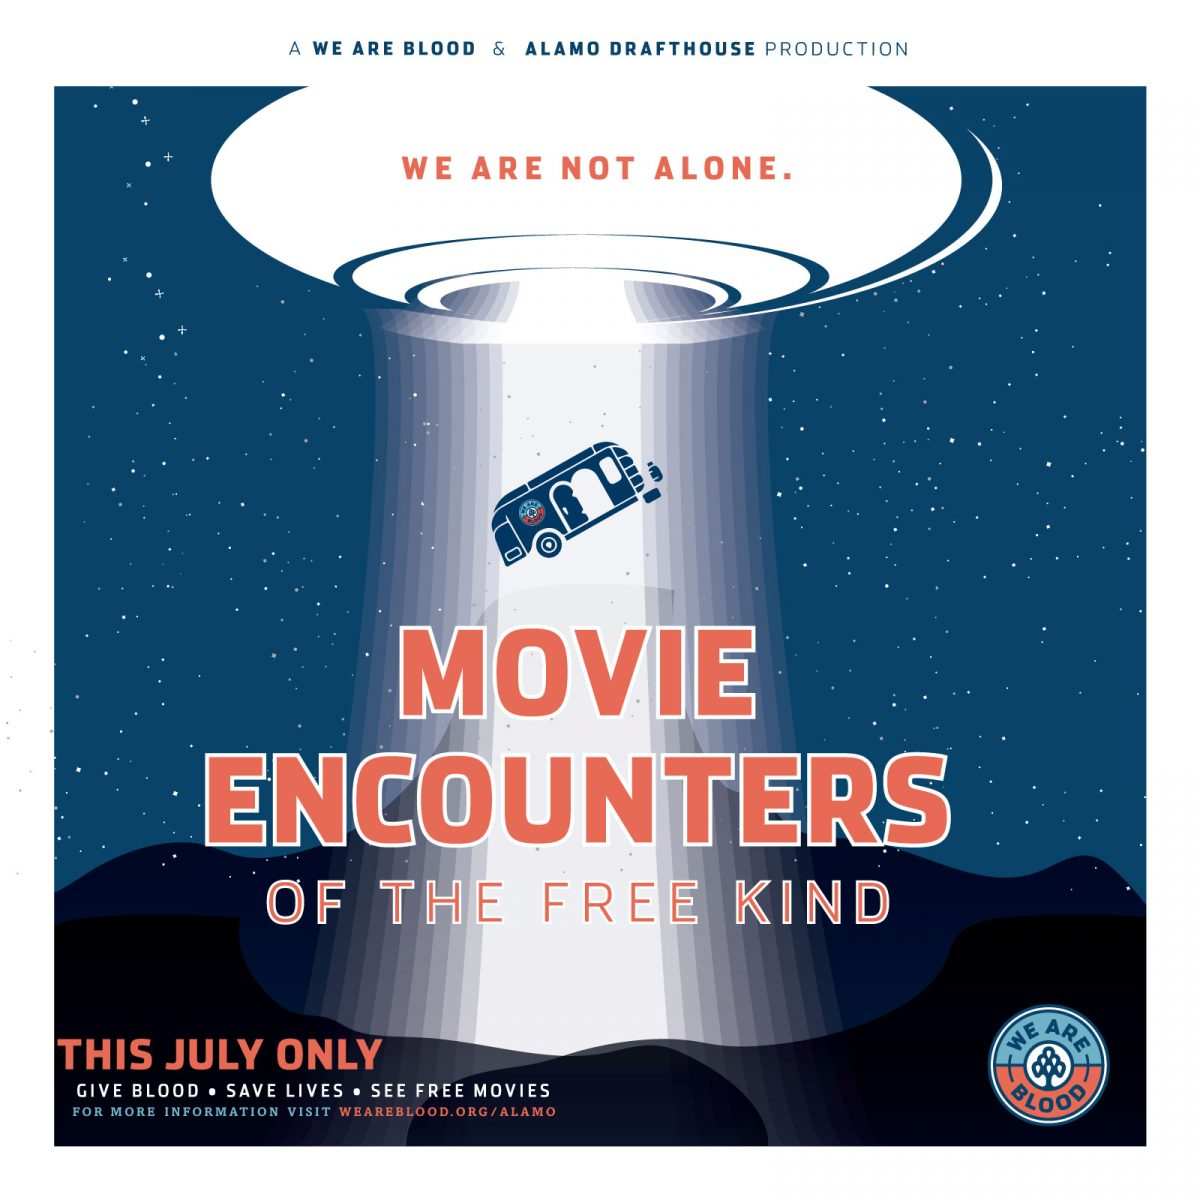 Movie Encounters of the Free Kind.